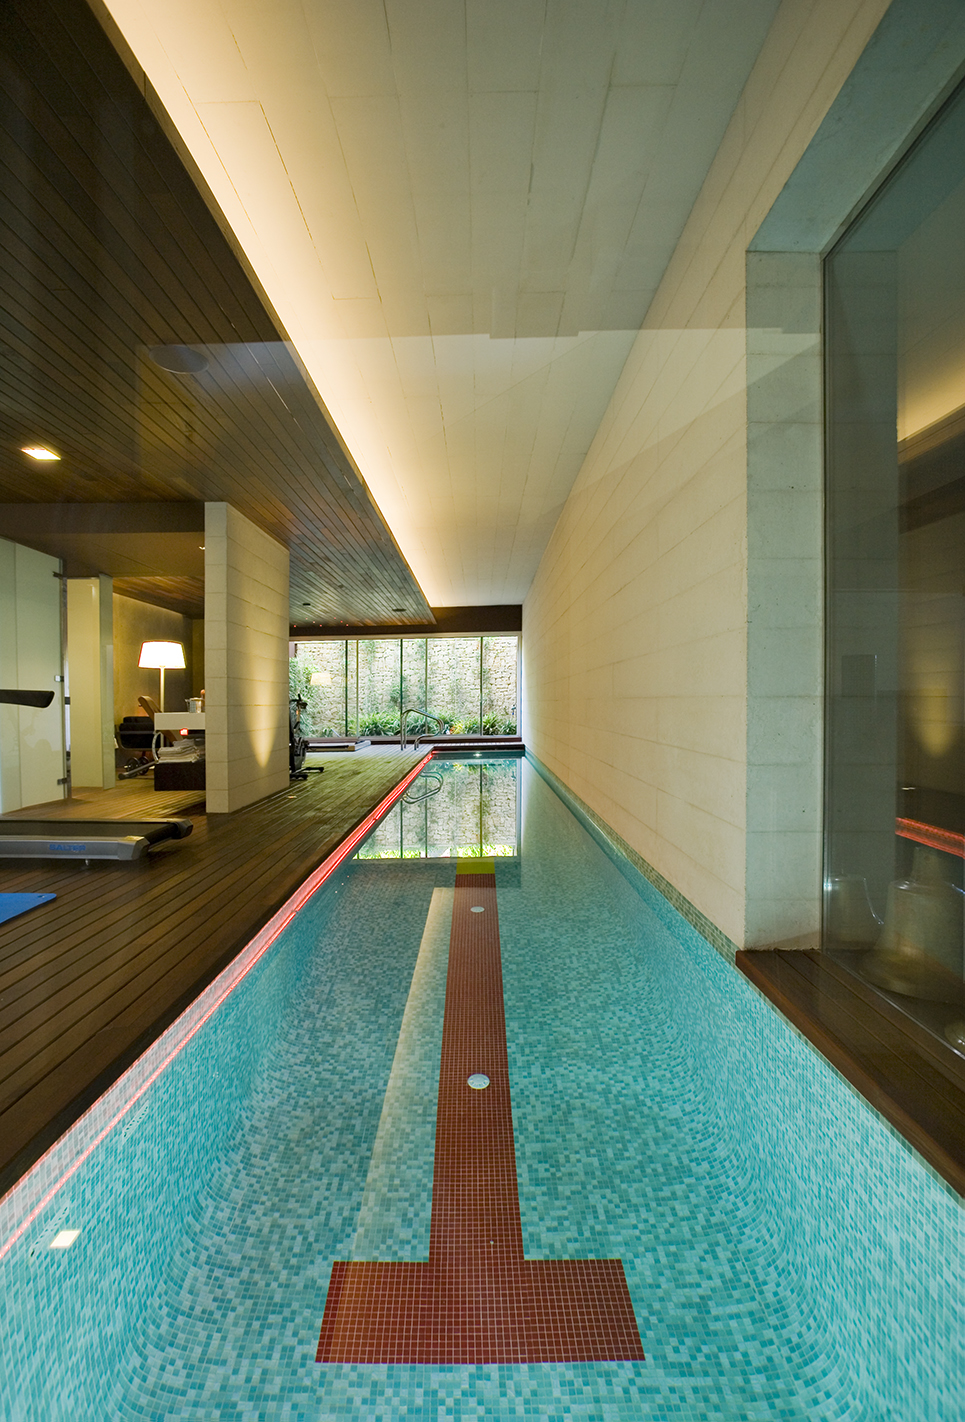 Basement swimming pool architectural photography